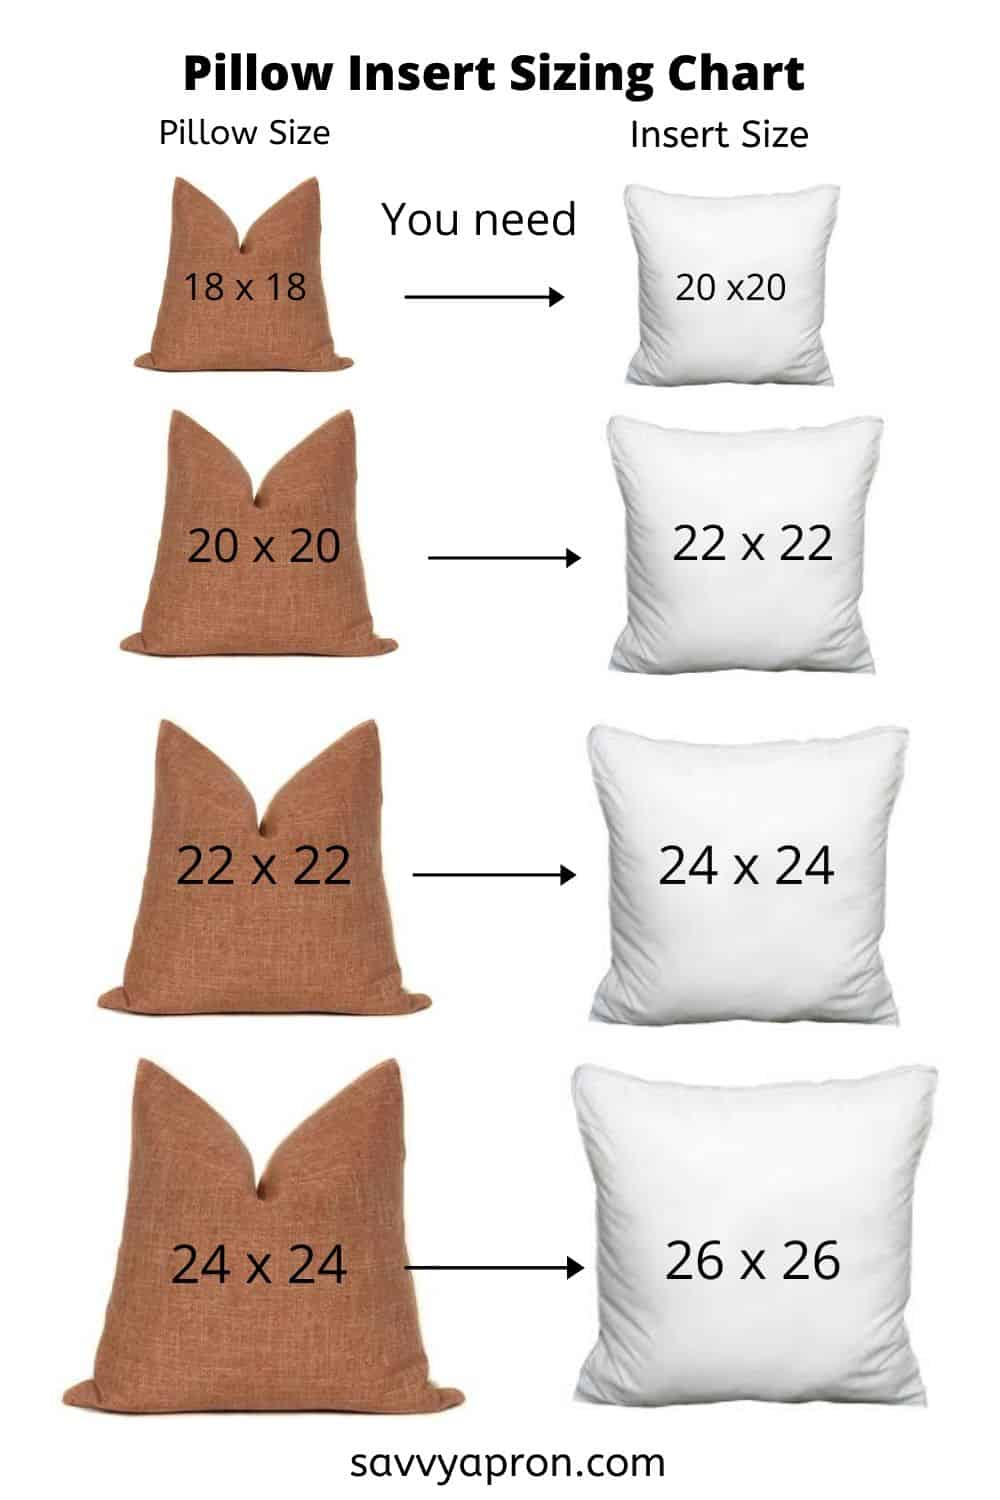 pillow insert sizing chart